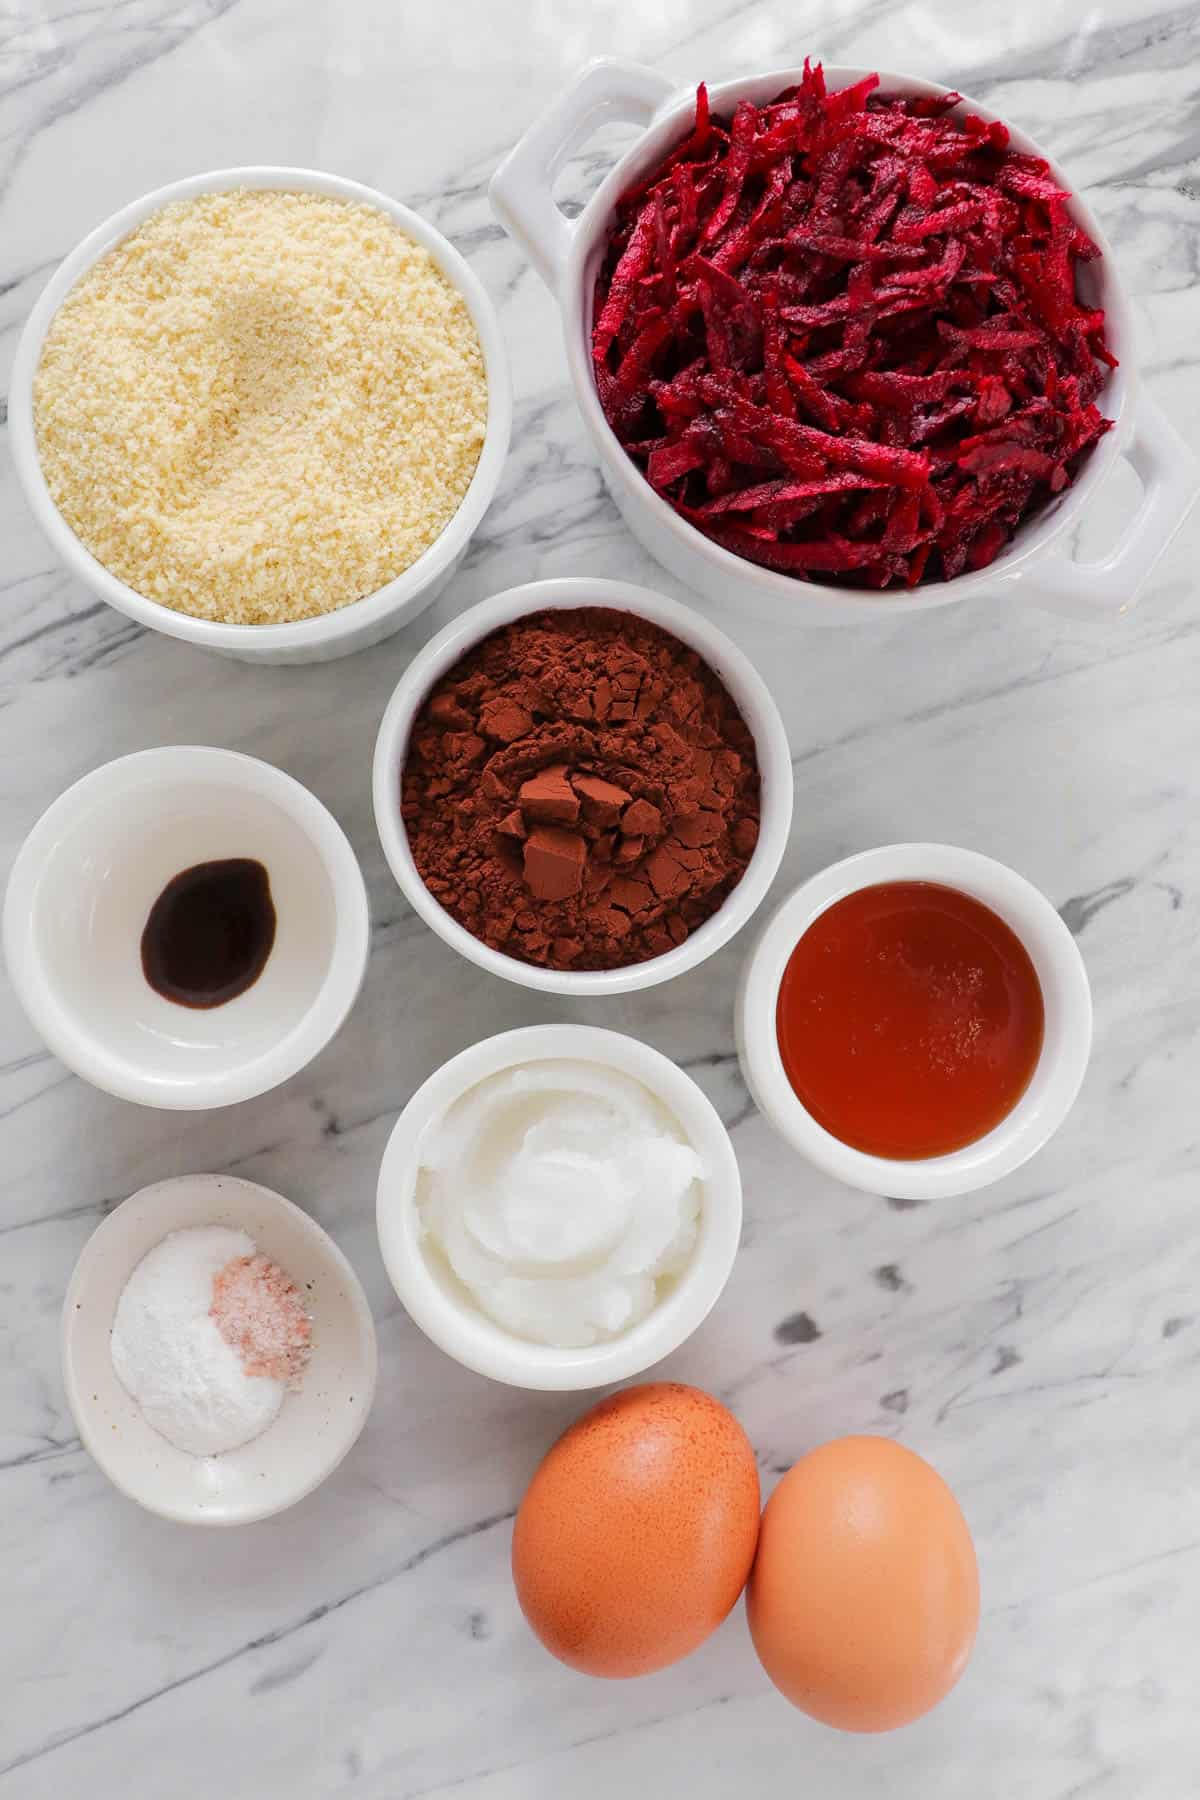 Ingredients for muffins.